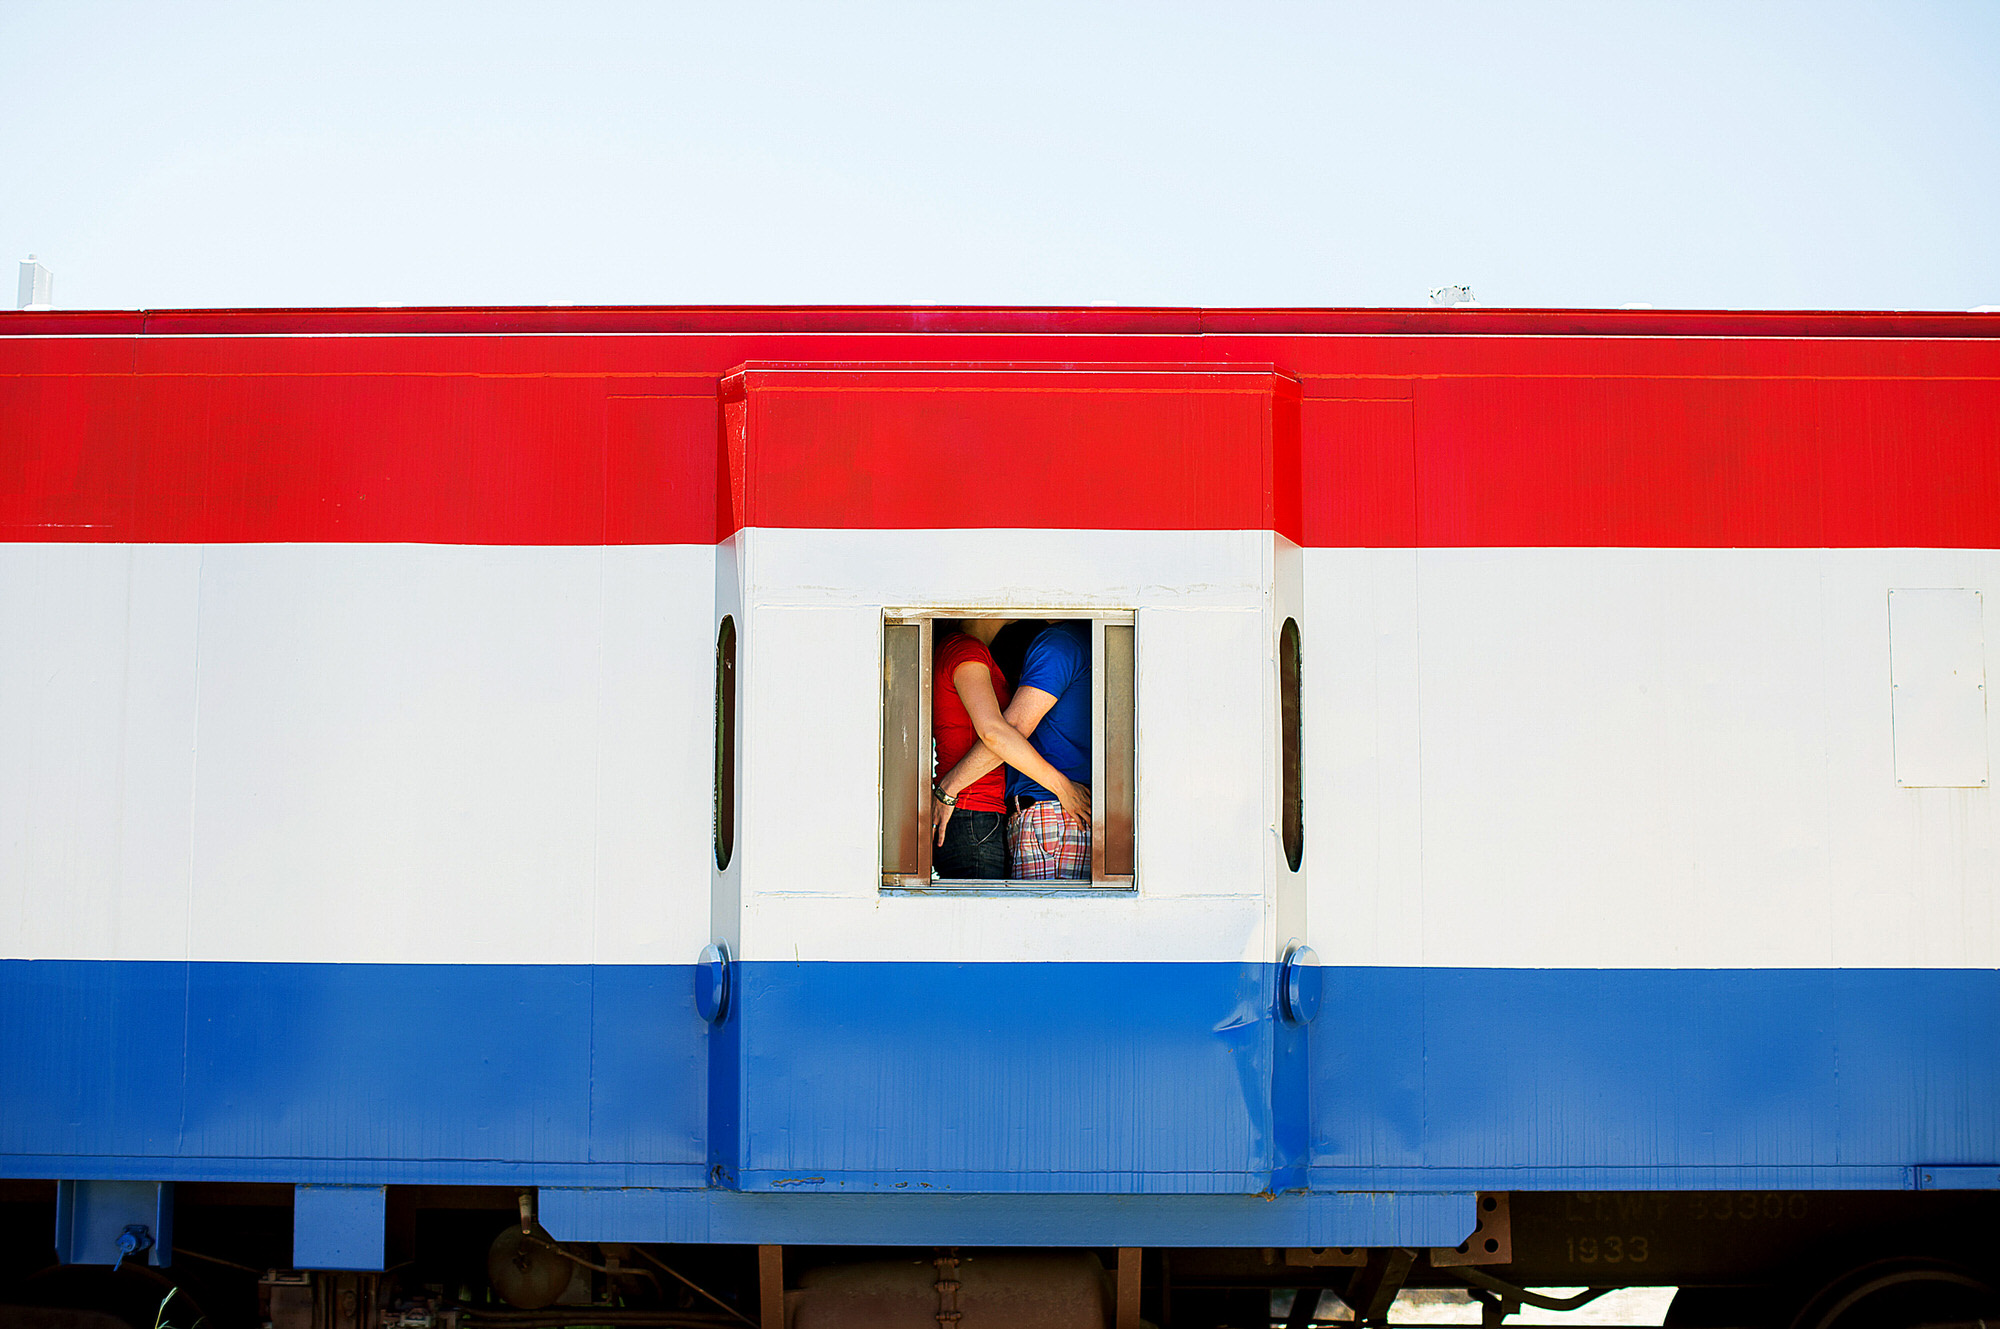 Couple embrace in red, white and blue train window - photo by Ken Pak - Washington, DC